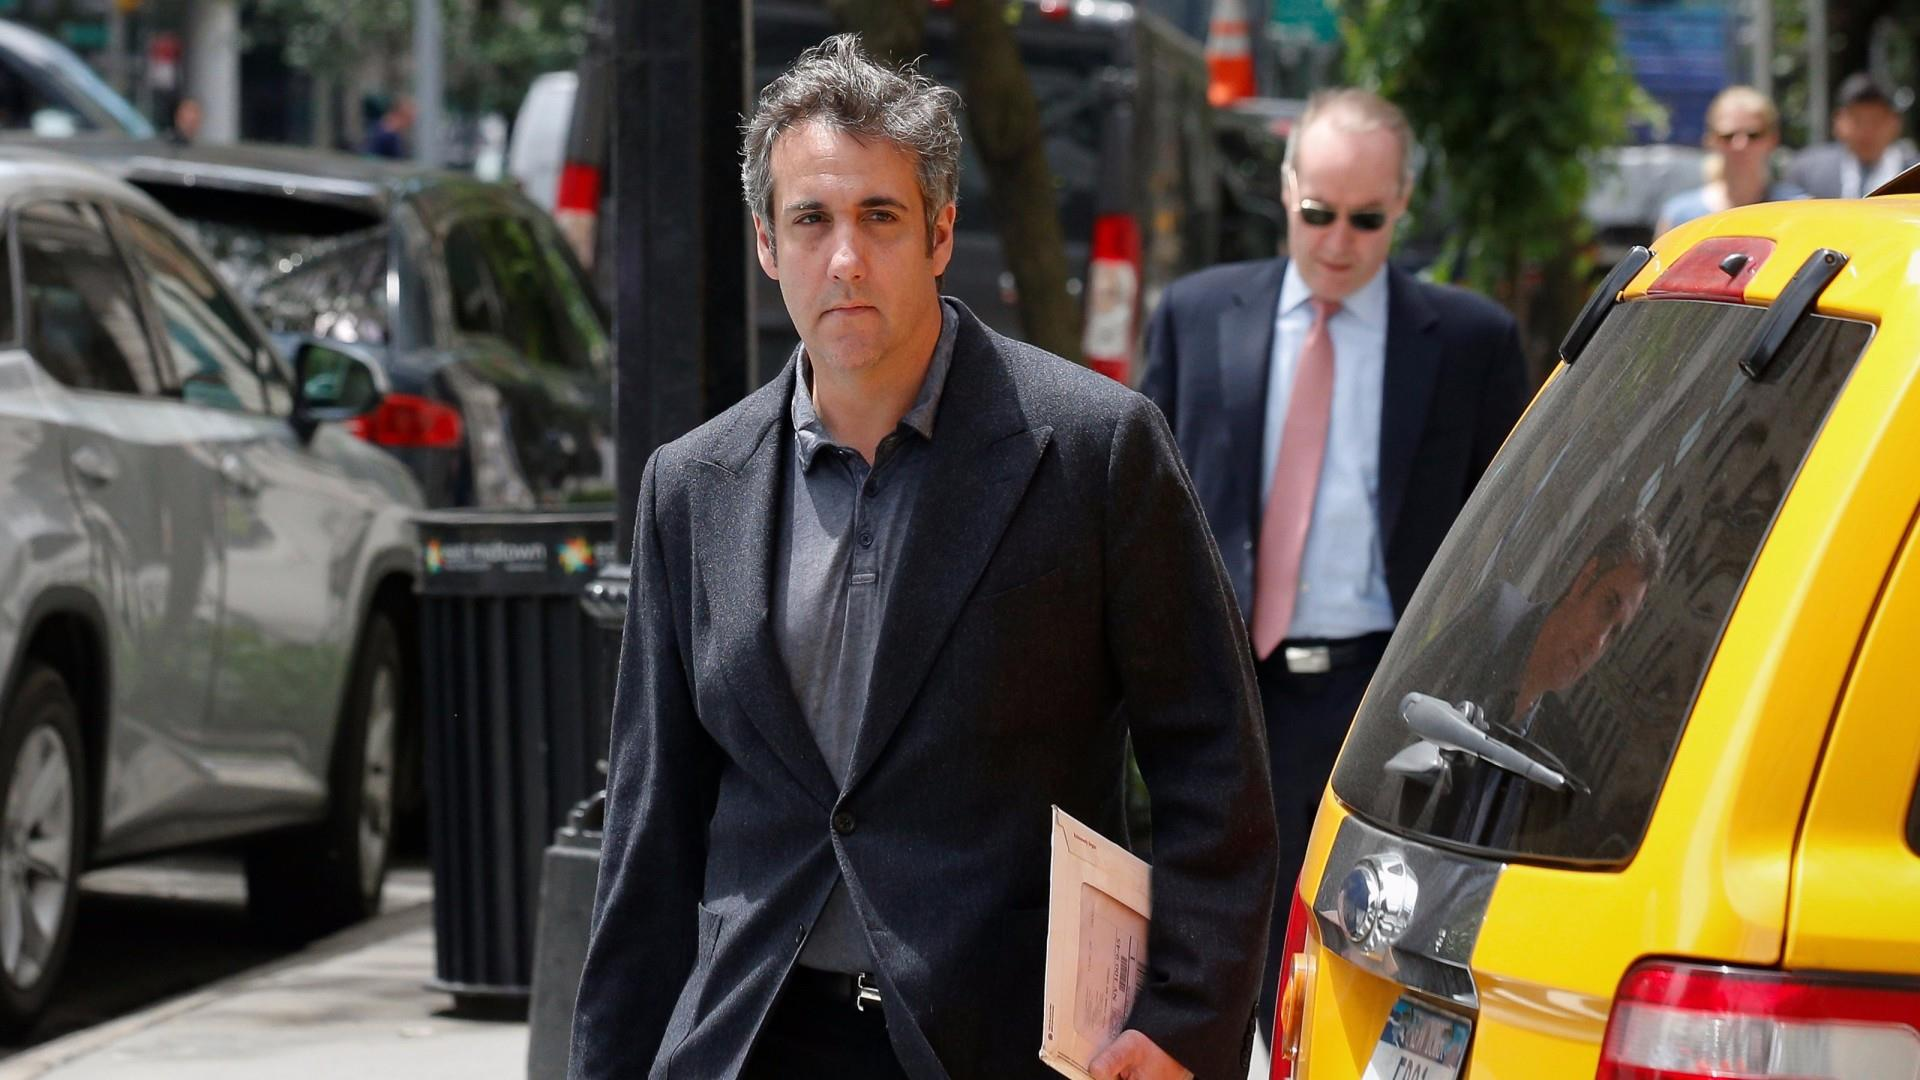 12 Cohen audio tapes released to federal investigators